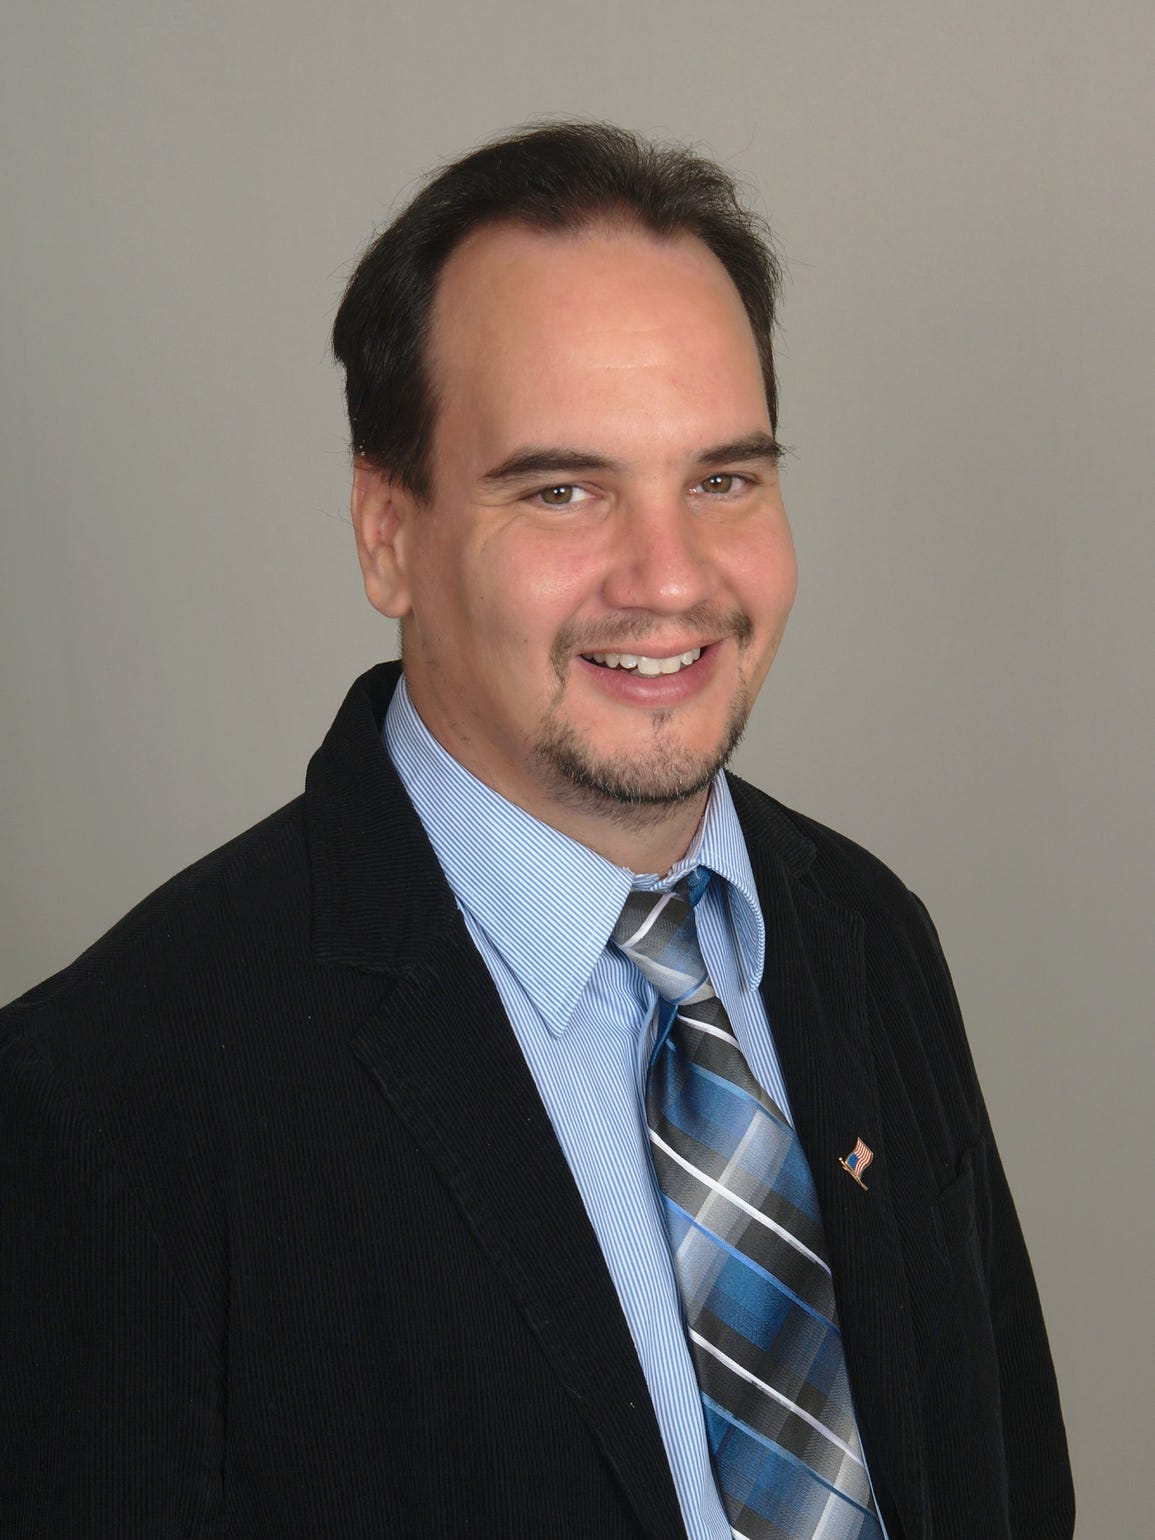 Paul Rizzo, candidate for U.S. Congress in Pennsylvania's